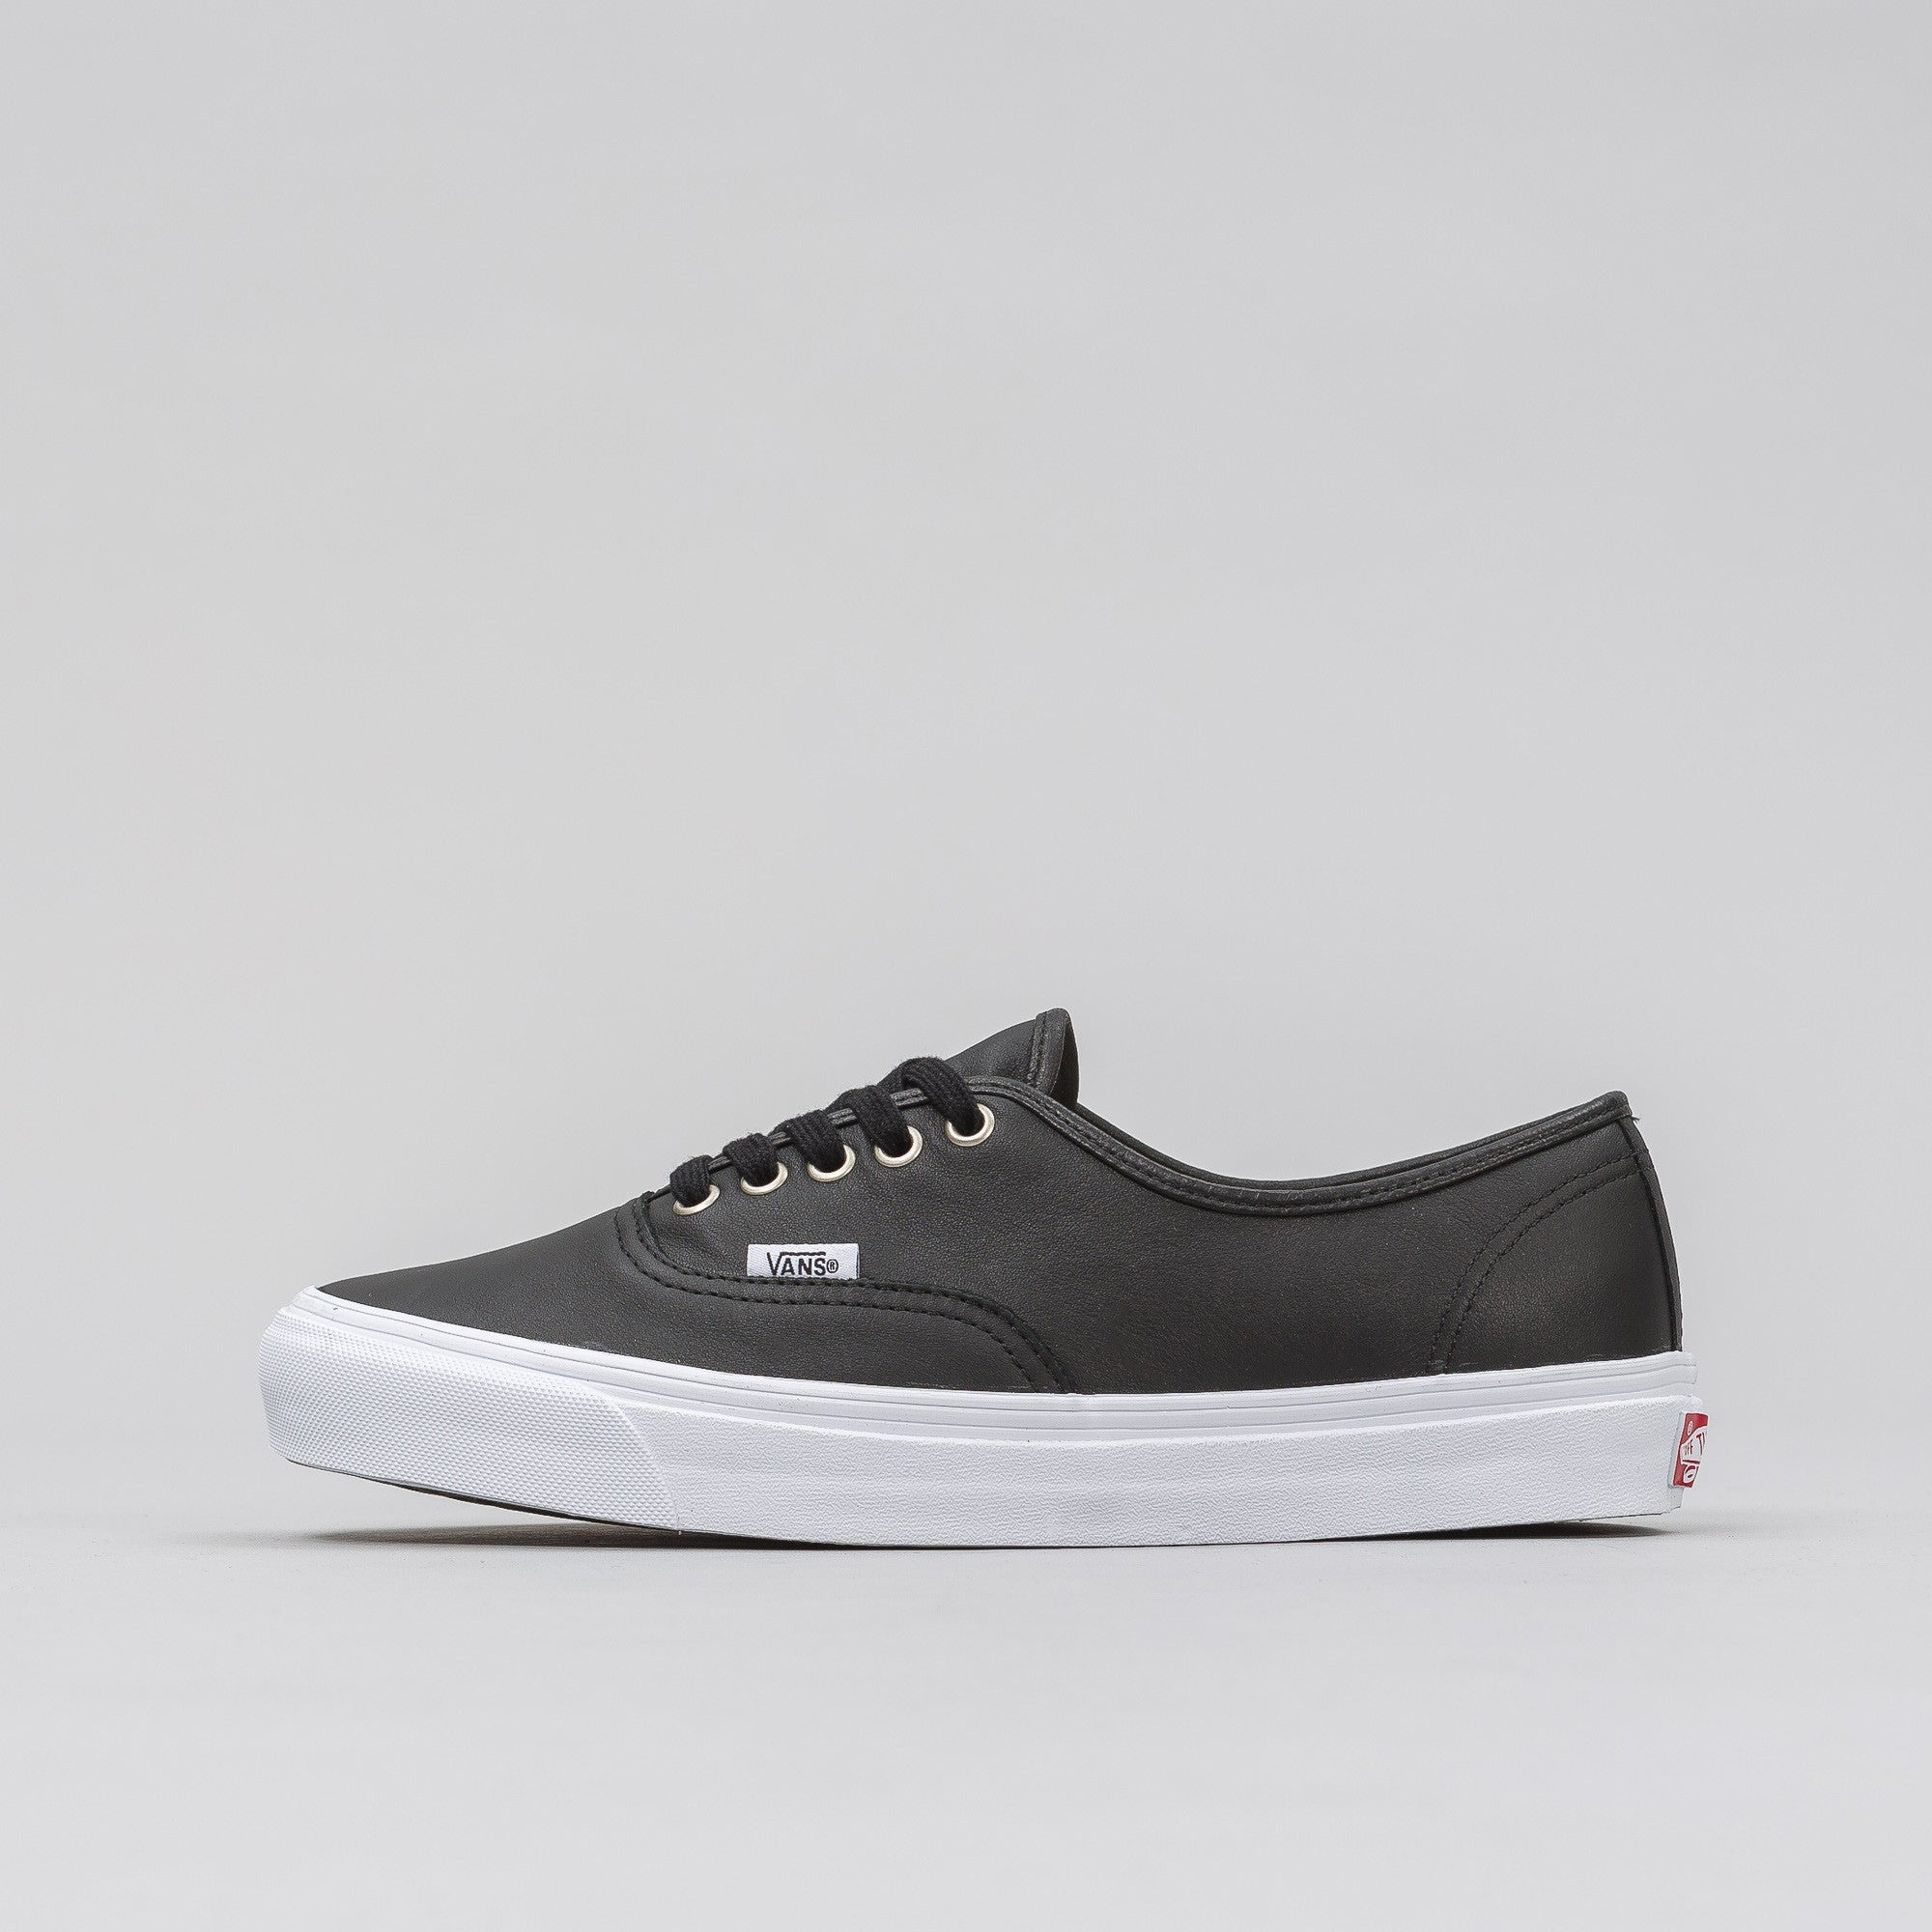 UA OG Authentic LX in Black